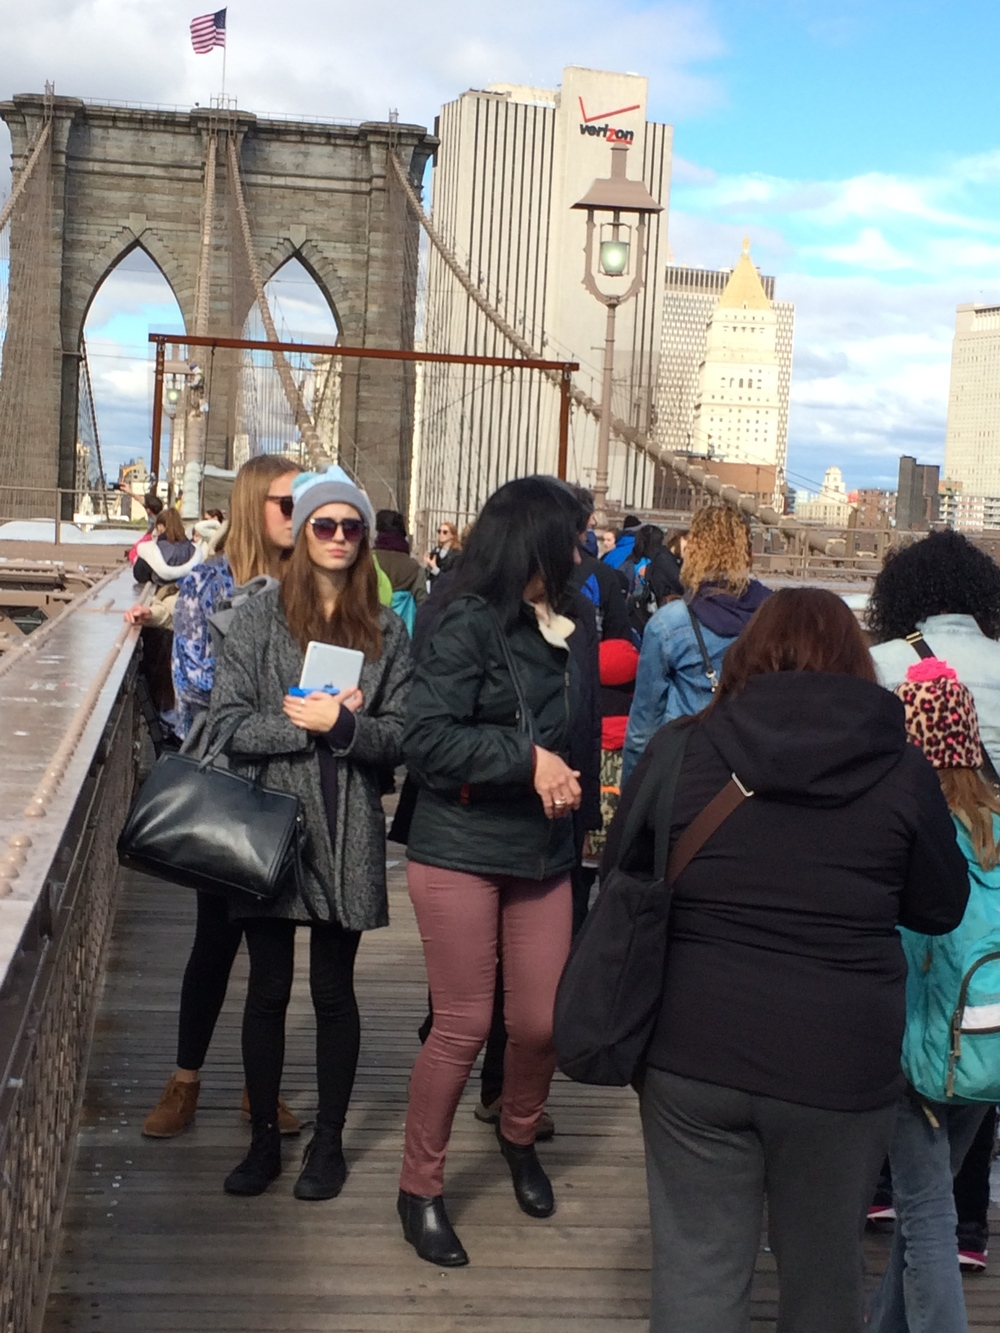 Brooklyn Bridge tourists